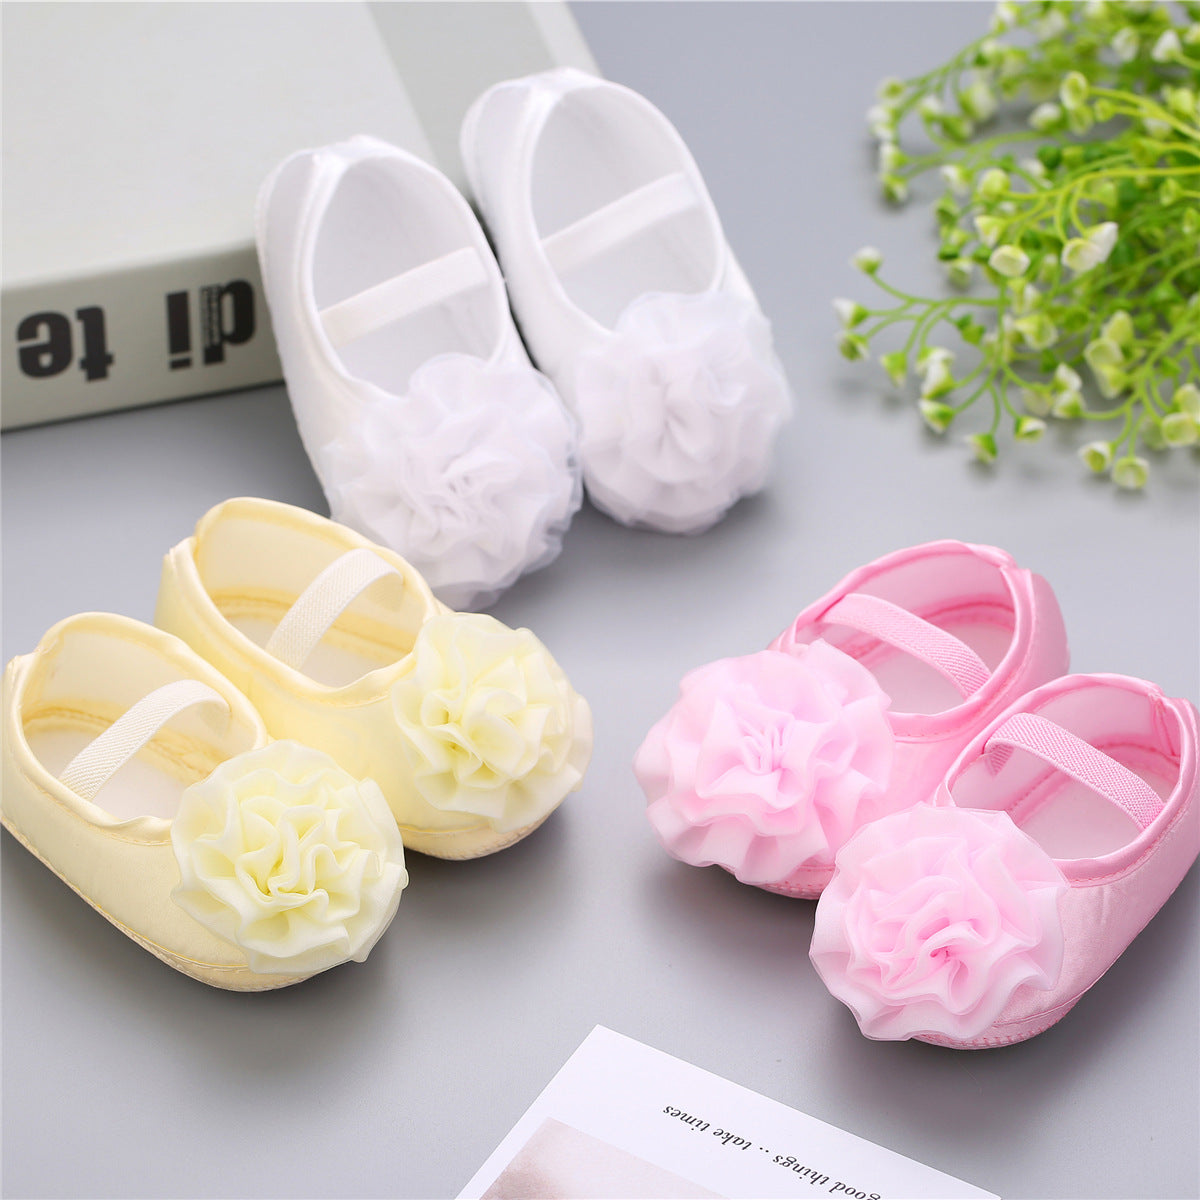 0-1 years old baby shoes 3-6-9-11 month